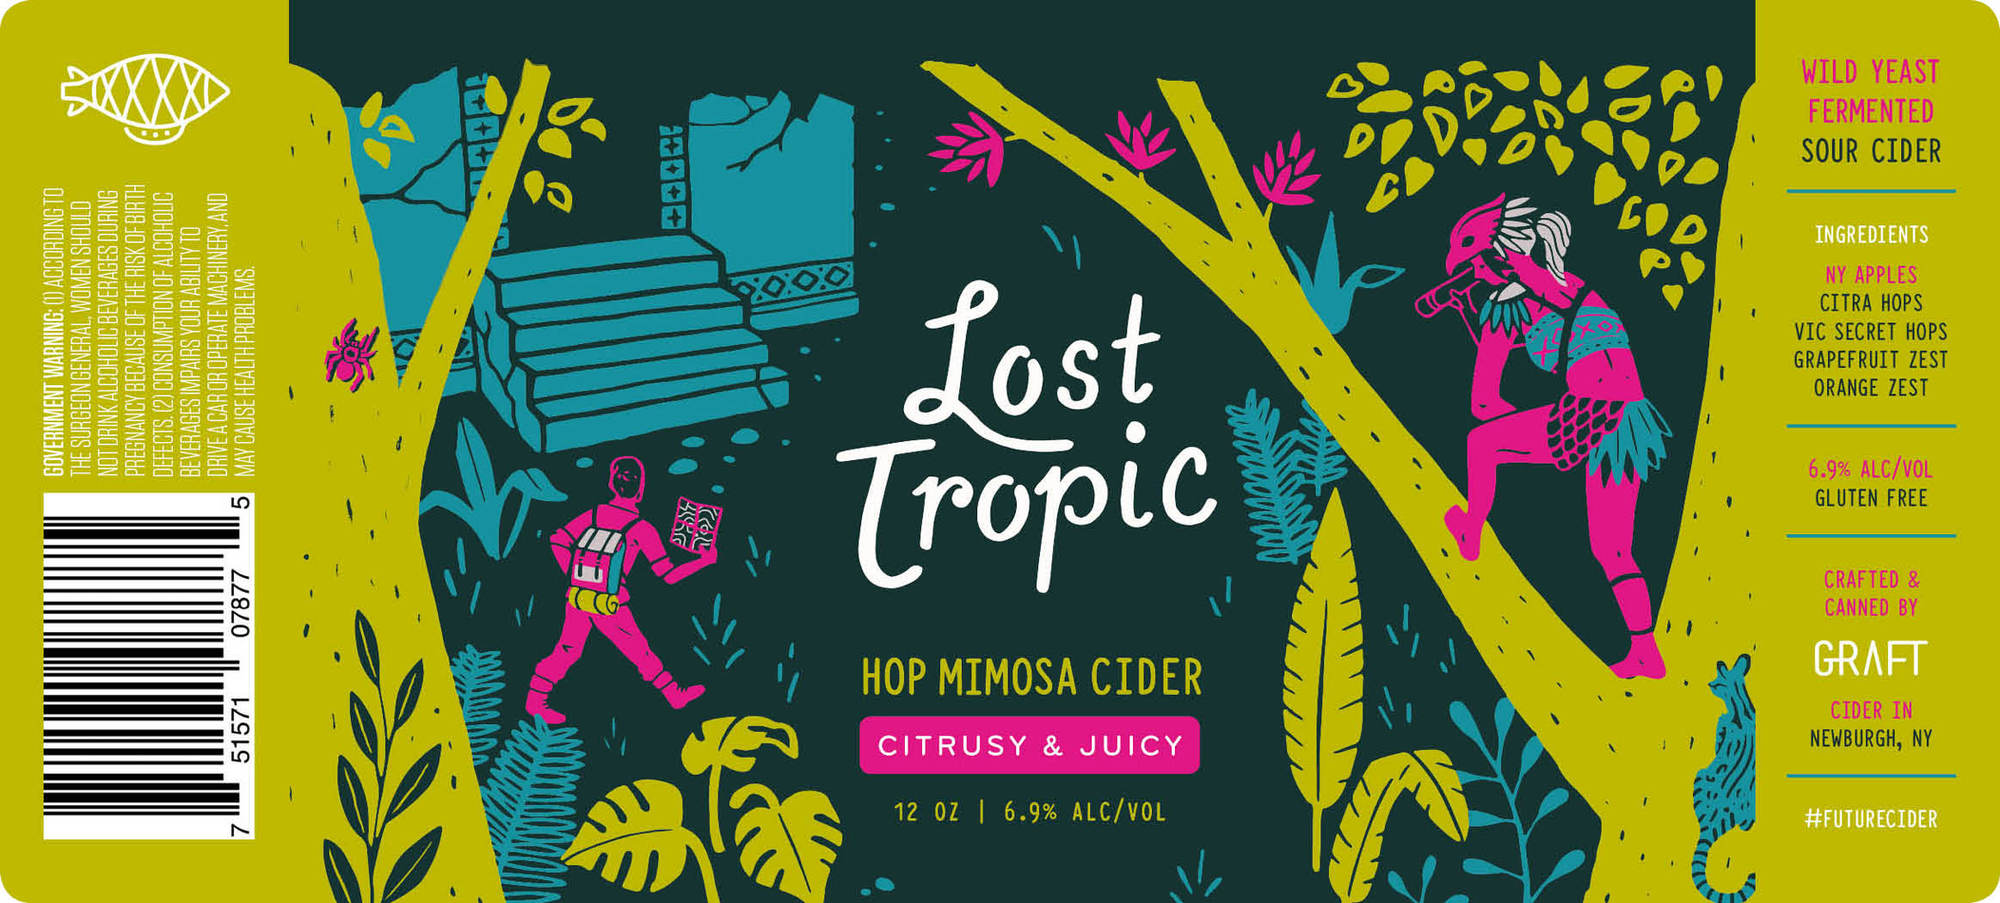 Graft Lost Tropic beer Label Full Size